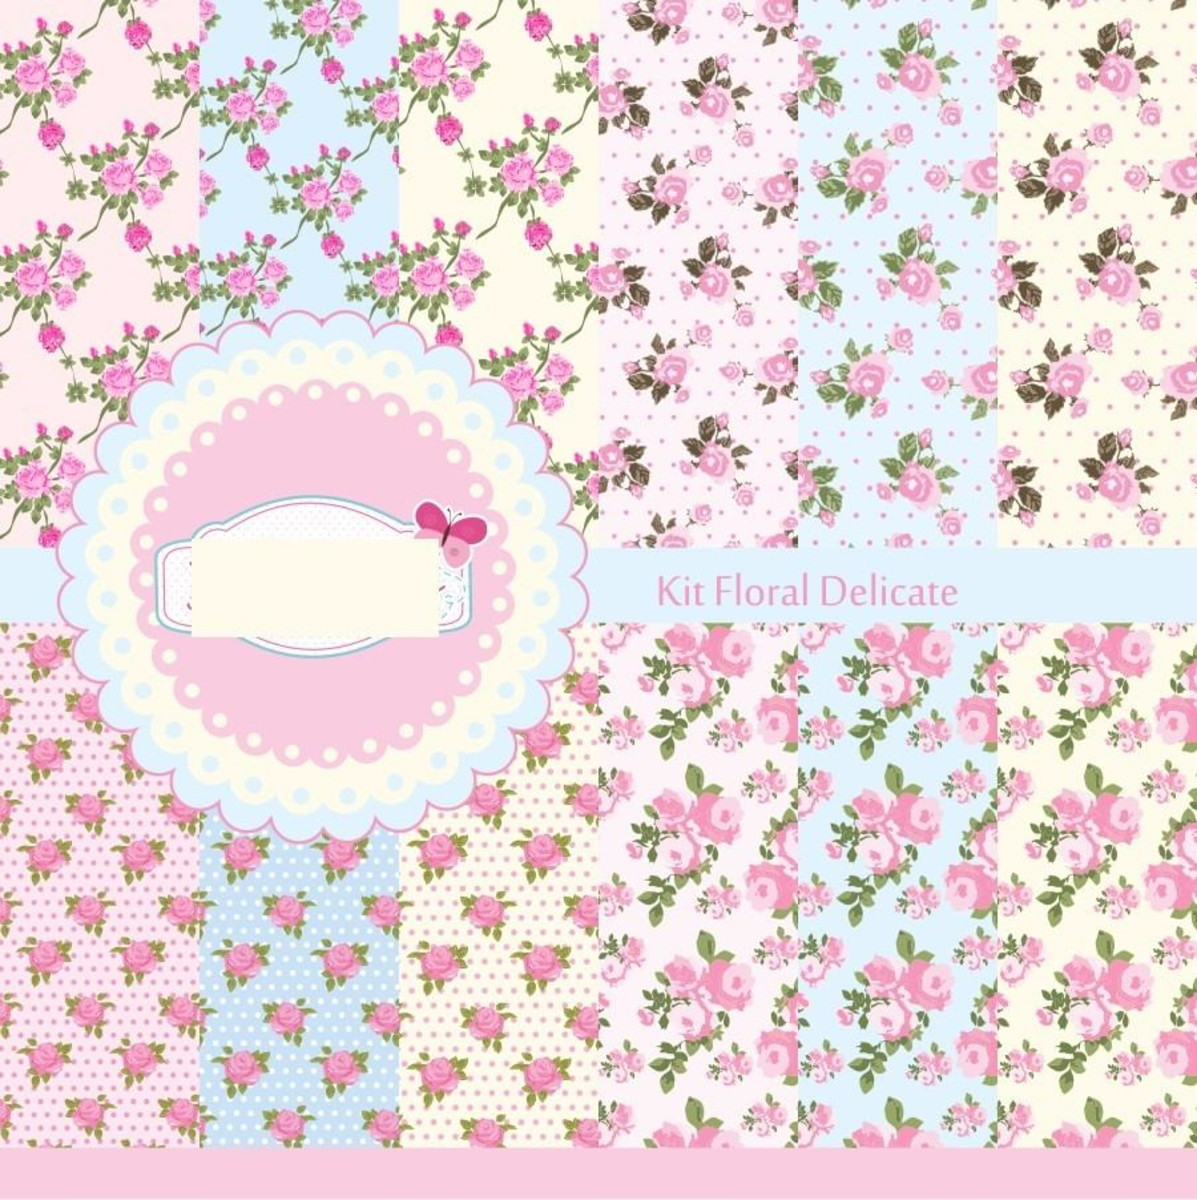 Papel Floral Delicado Elementos Digital Scrapbook Brinde No Elo7